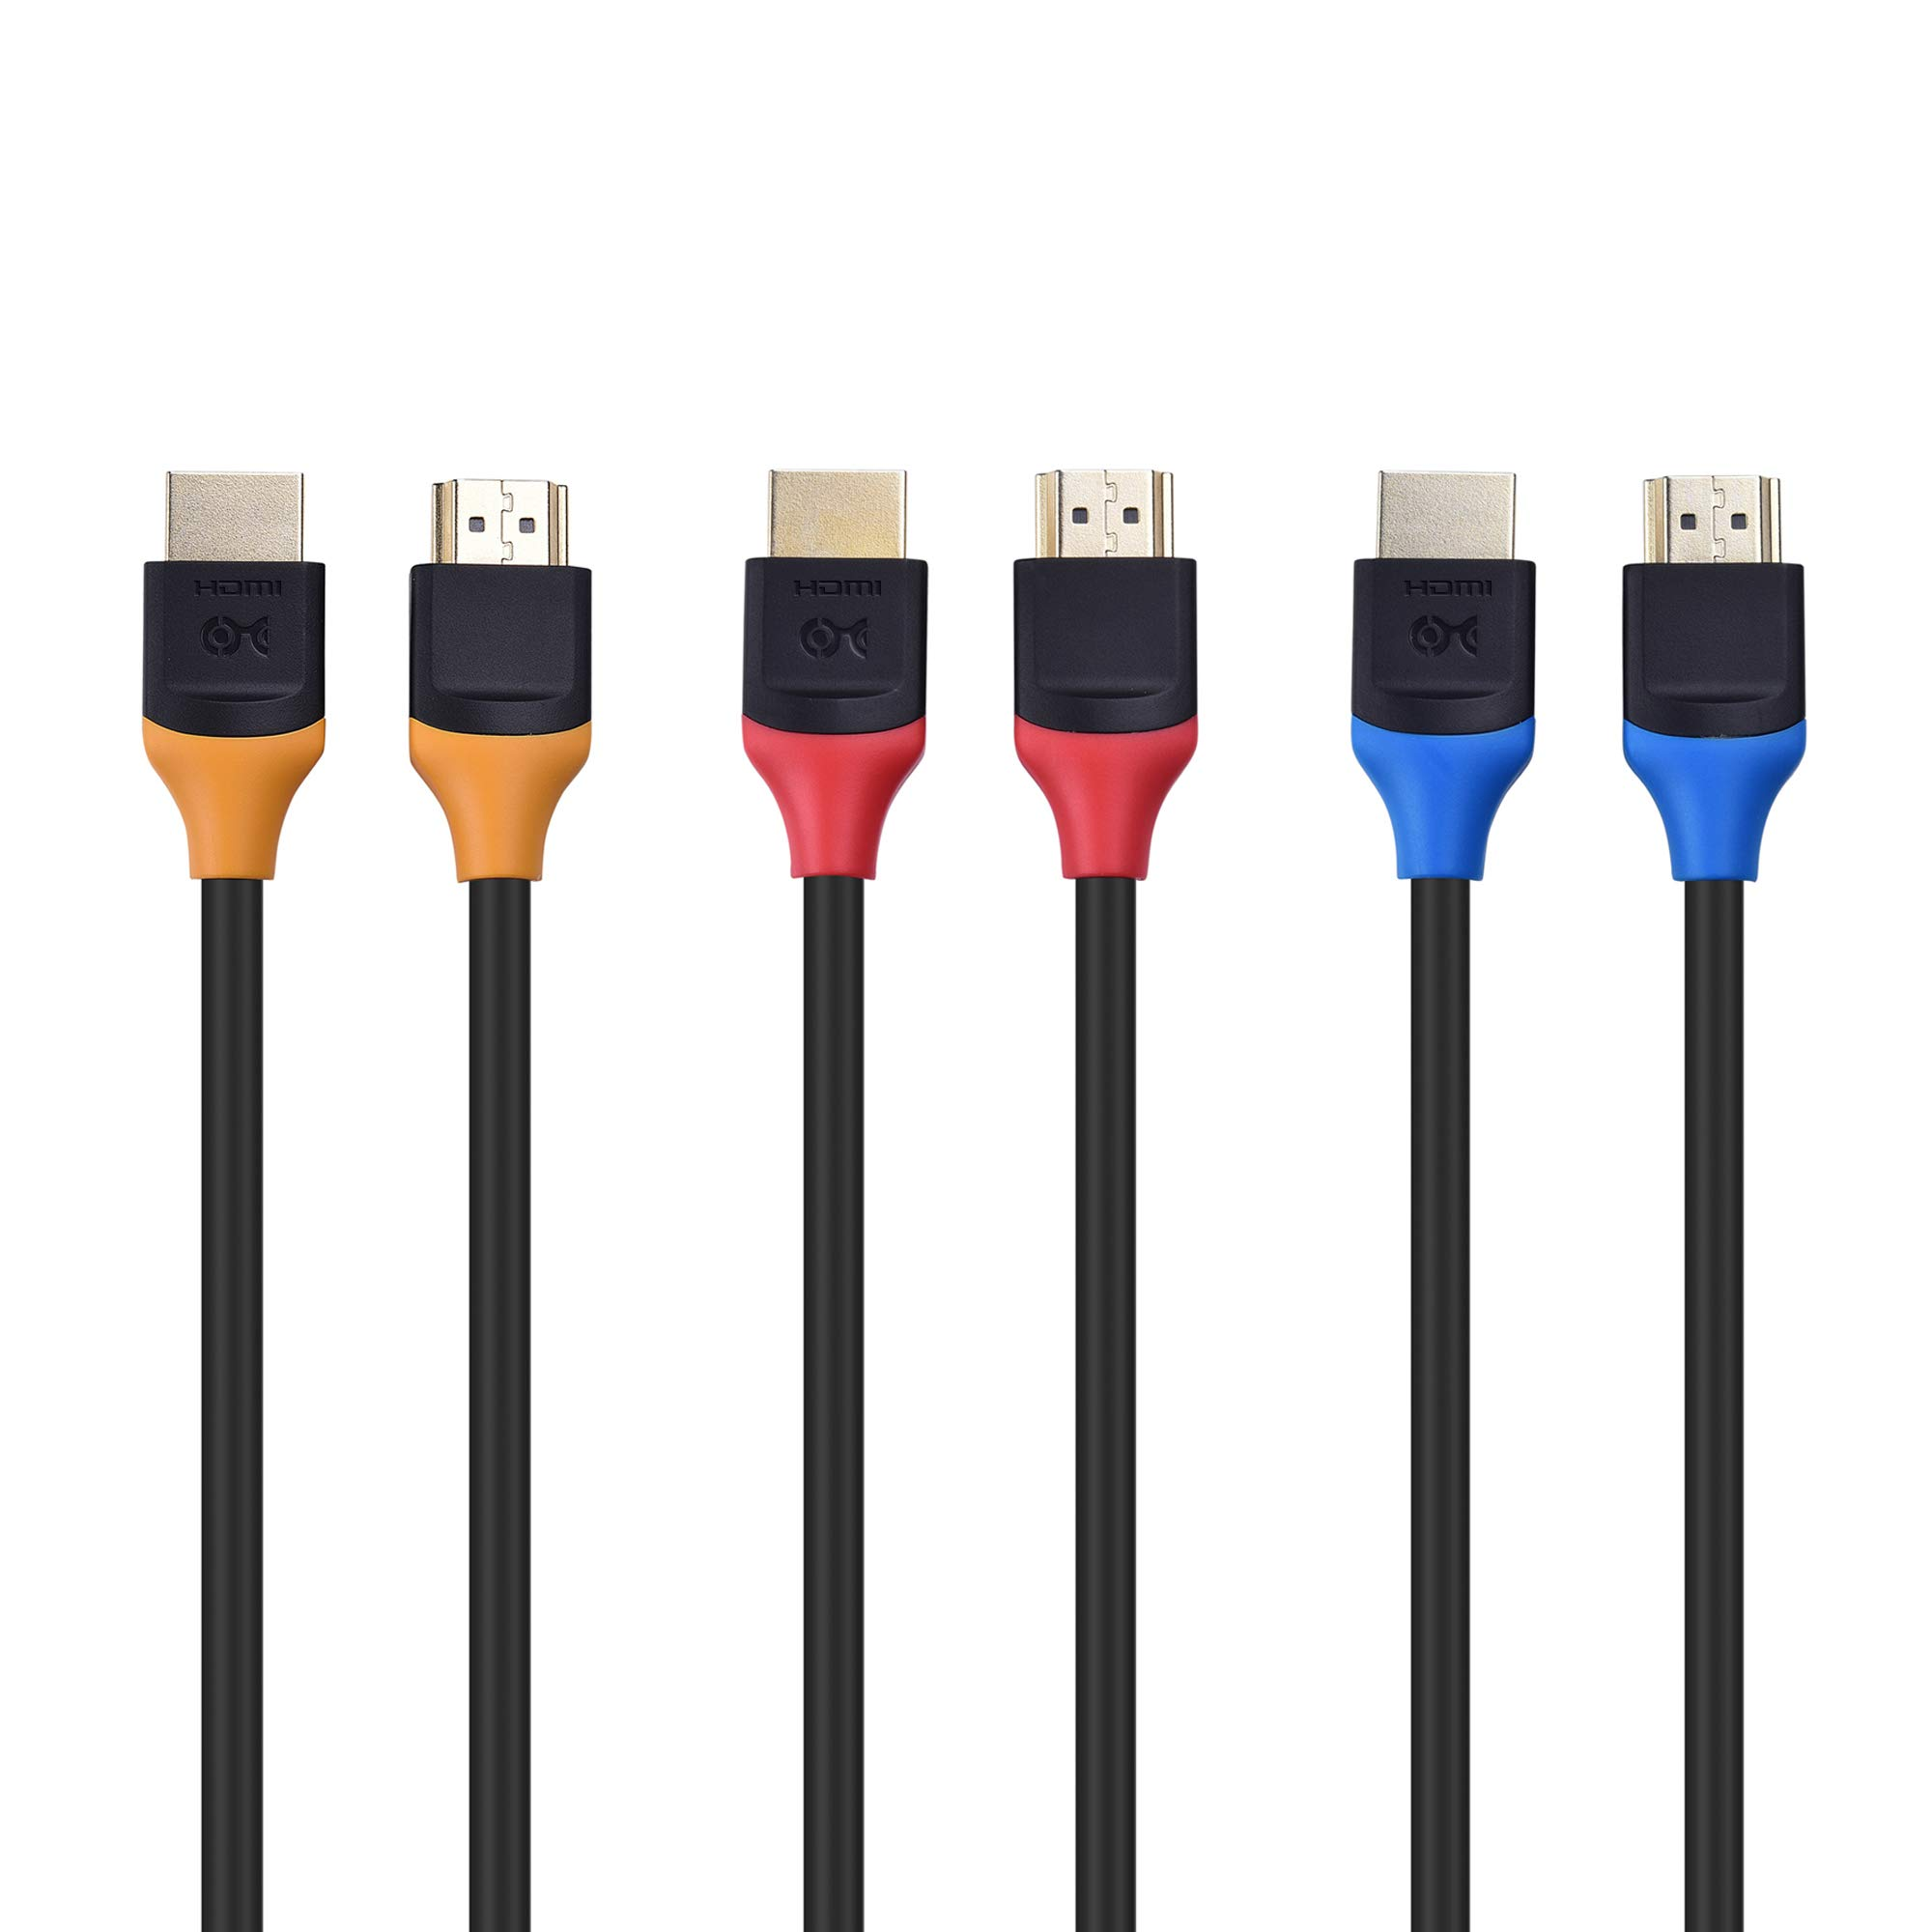 Cable Matters 3-Pack High Speed HDMI to HDMI Cable 10 Feet with HDR and 4K Resolution Support by Cable Matters